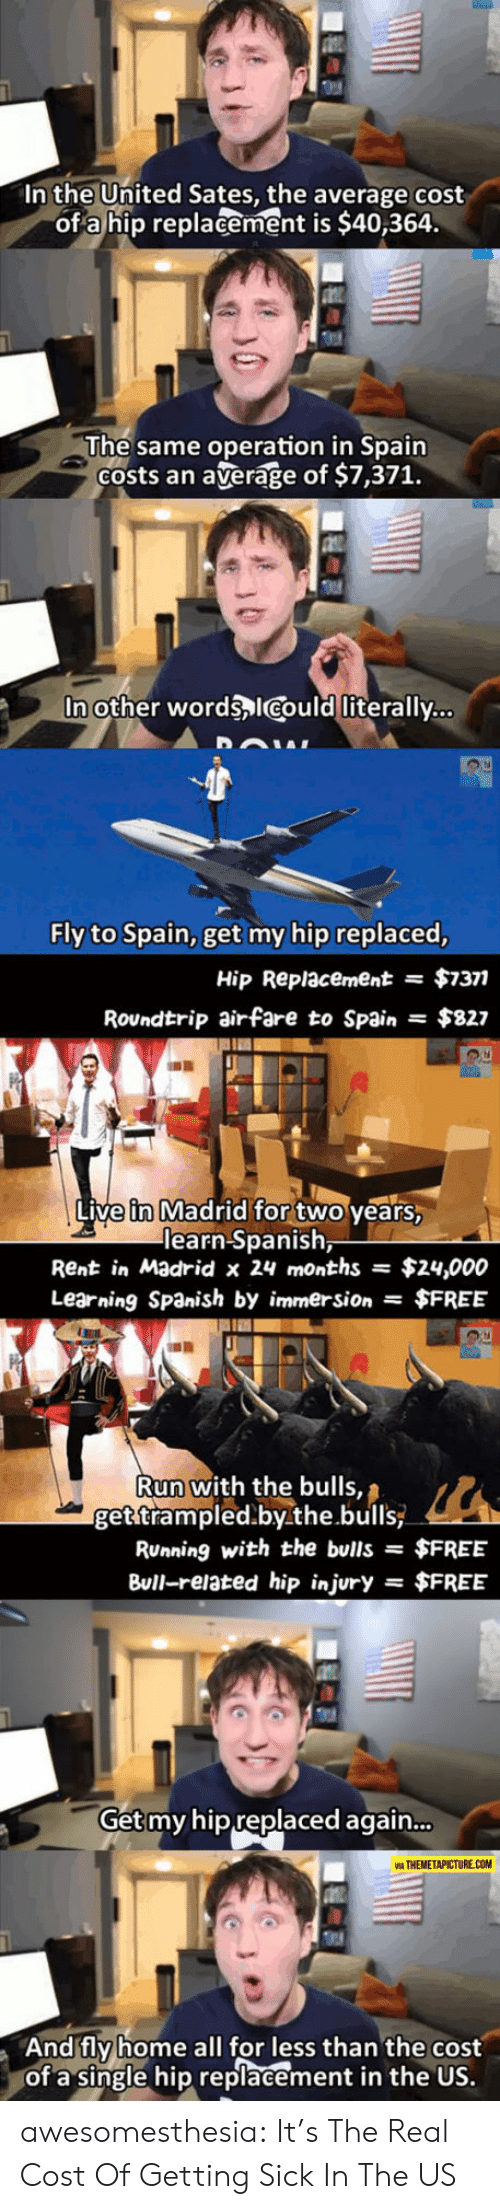 bull: In the United Sates, the average cost  of a hip replacement is $40,364.  The same operation in Spain  Costs an  average of $7,371.  In other words ICould literally...  Fly to Spain, get my hip replaced,  $7377  Hip Replacement  =  Roundtrip airfare to Spain  $827  Live in Madrid for two years,  learn Spanish,  Rent in Madrid x 24 months  $24,000  Learning Spanish by immersion $FREE  Run with the bulls,  get trampled.by.the.bulls  RUnning with the bulls =  $FREE  Bull-related hip injury  $FREE  =  Get my hip replaced again...  VIA THEMETAPICTURE.COM  And fly home all for less than the cost  of a single hip replacement in the US. awesomesthesia:  It's The Real Cost Of Getting Sick In The US